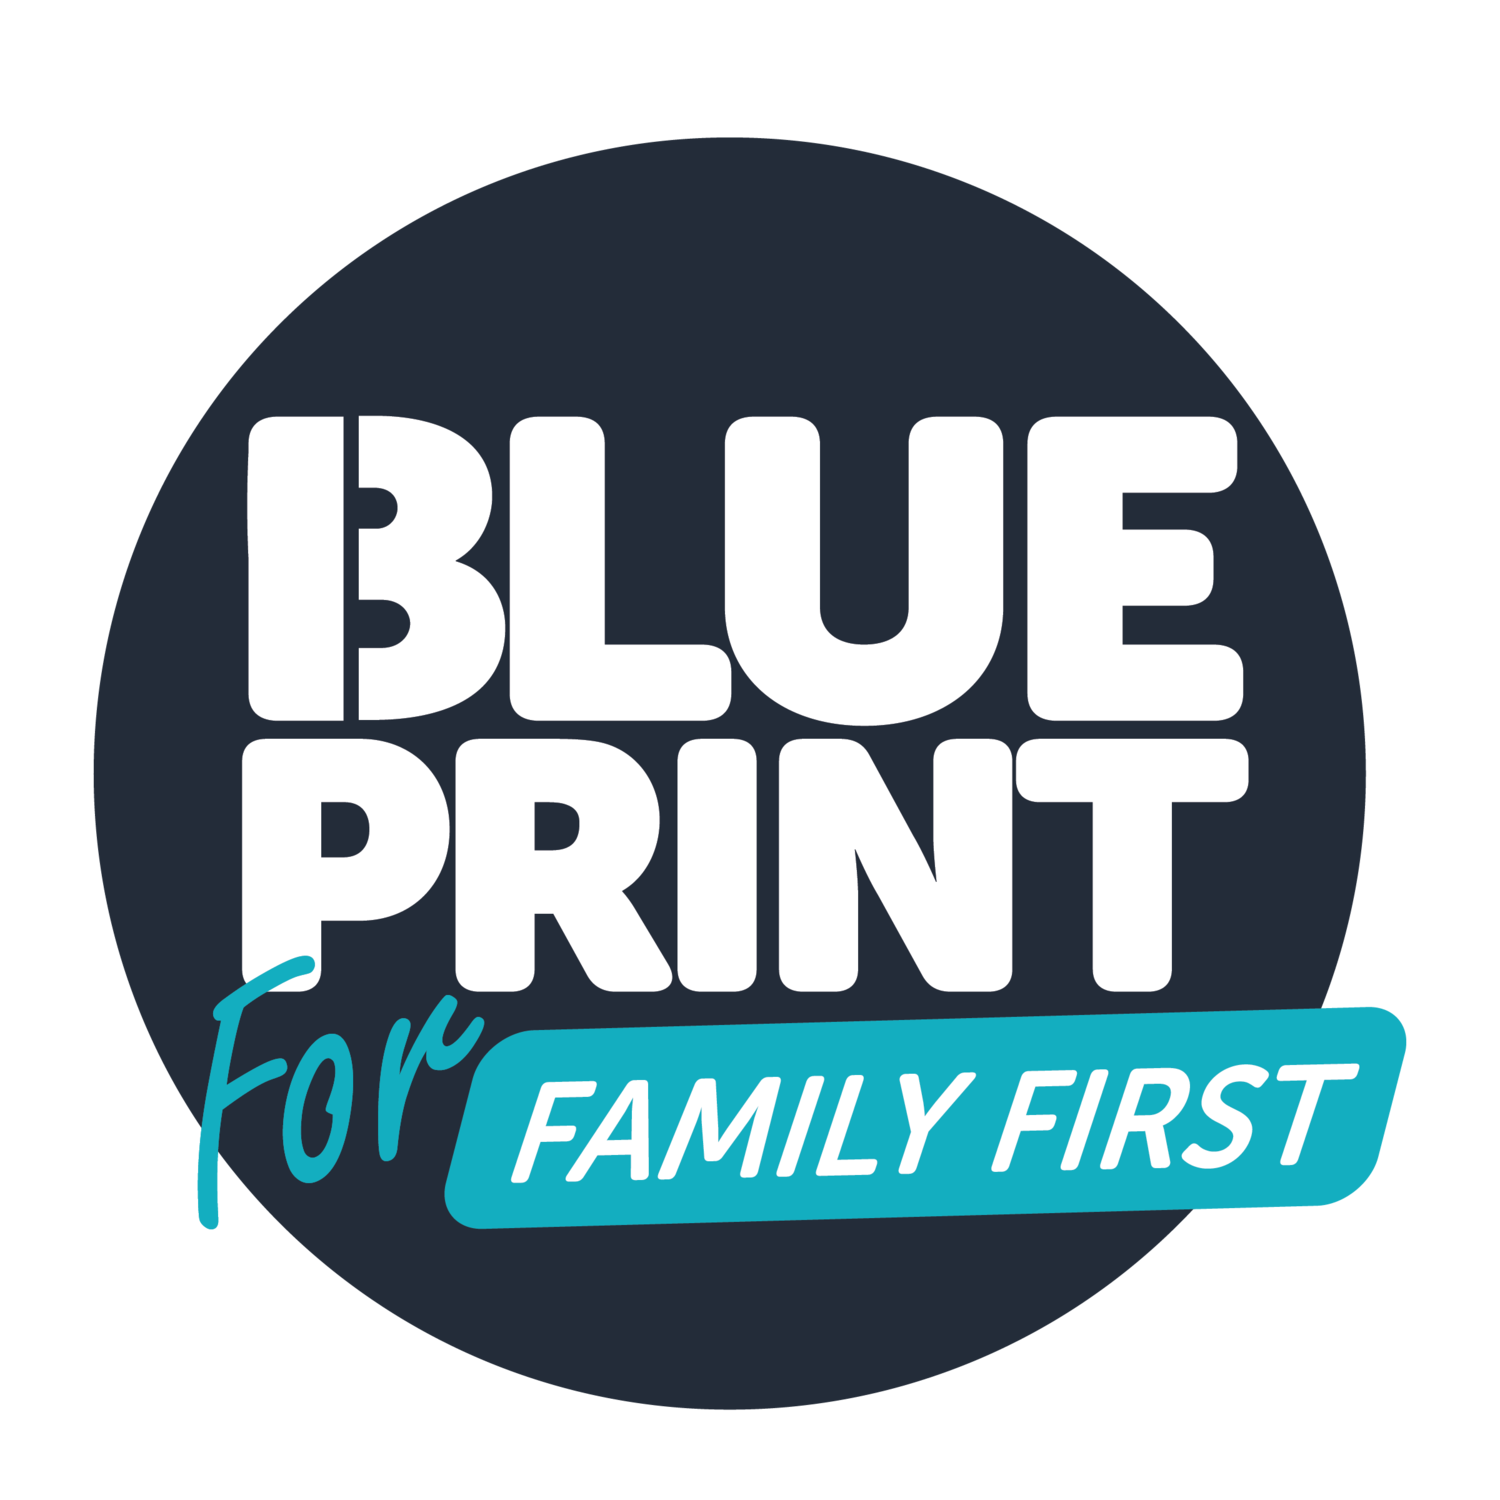 Champion of Blueprint for Family First